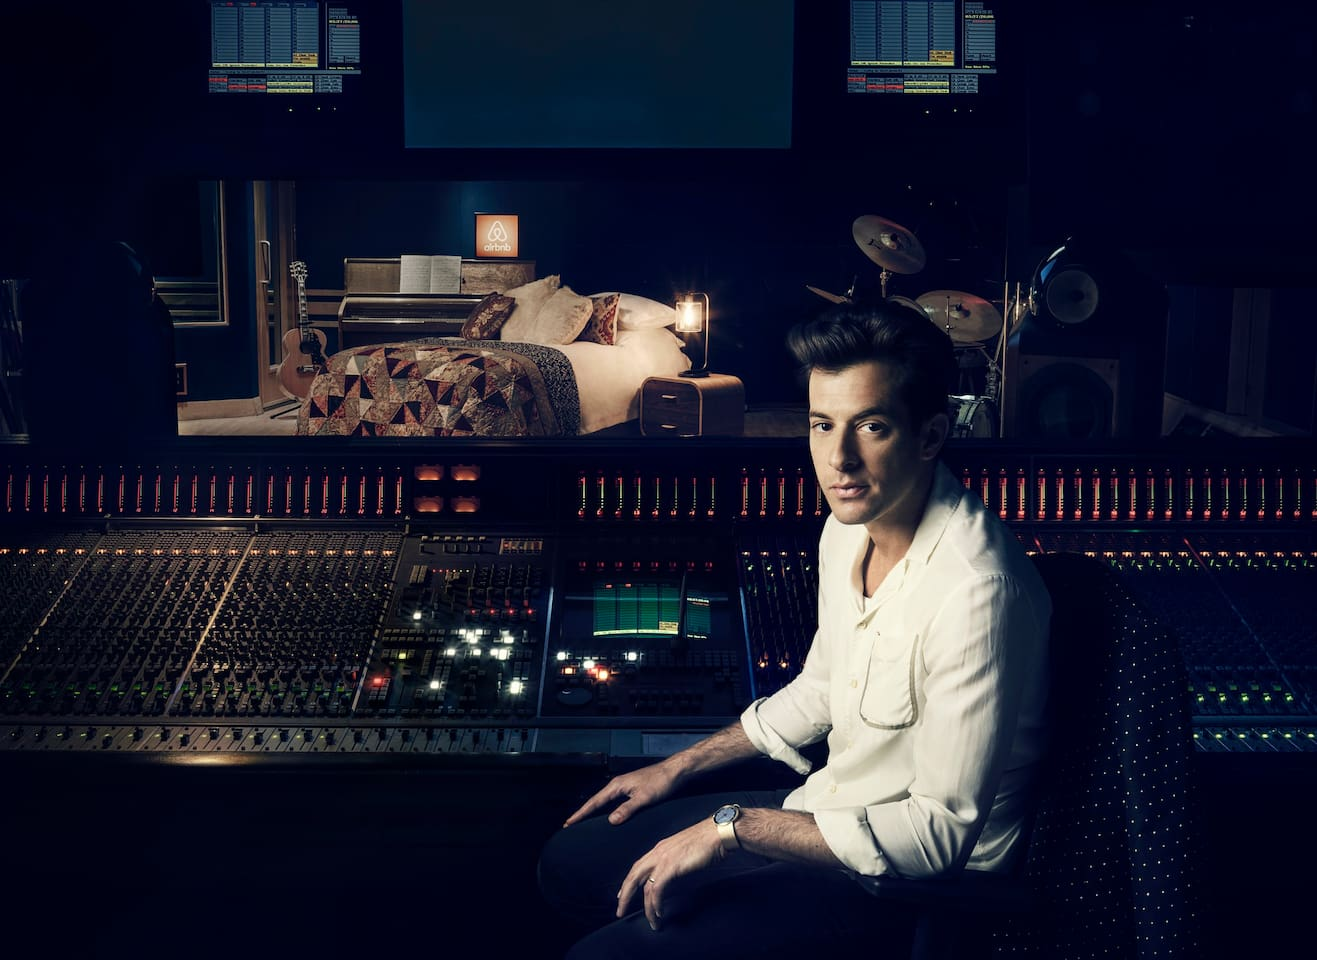 Fire up the amps and make memories with your iconic host, Mark Ronson.